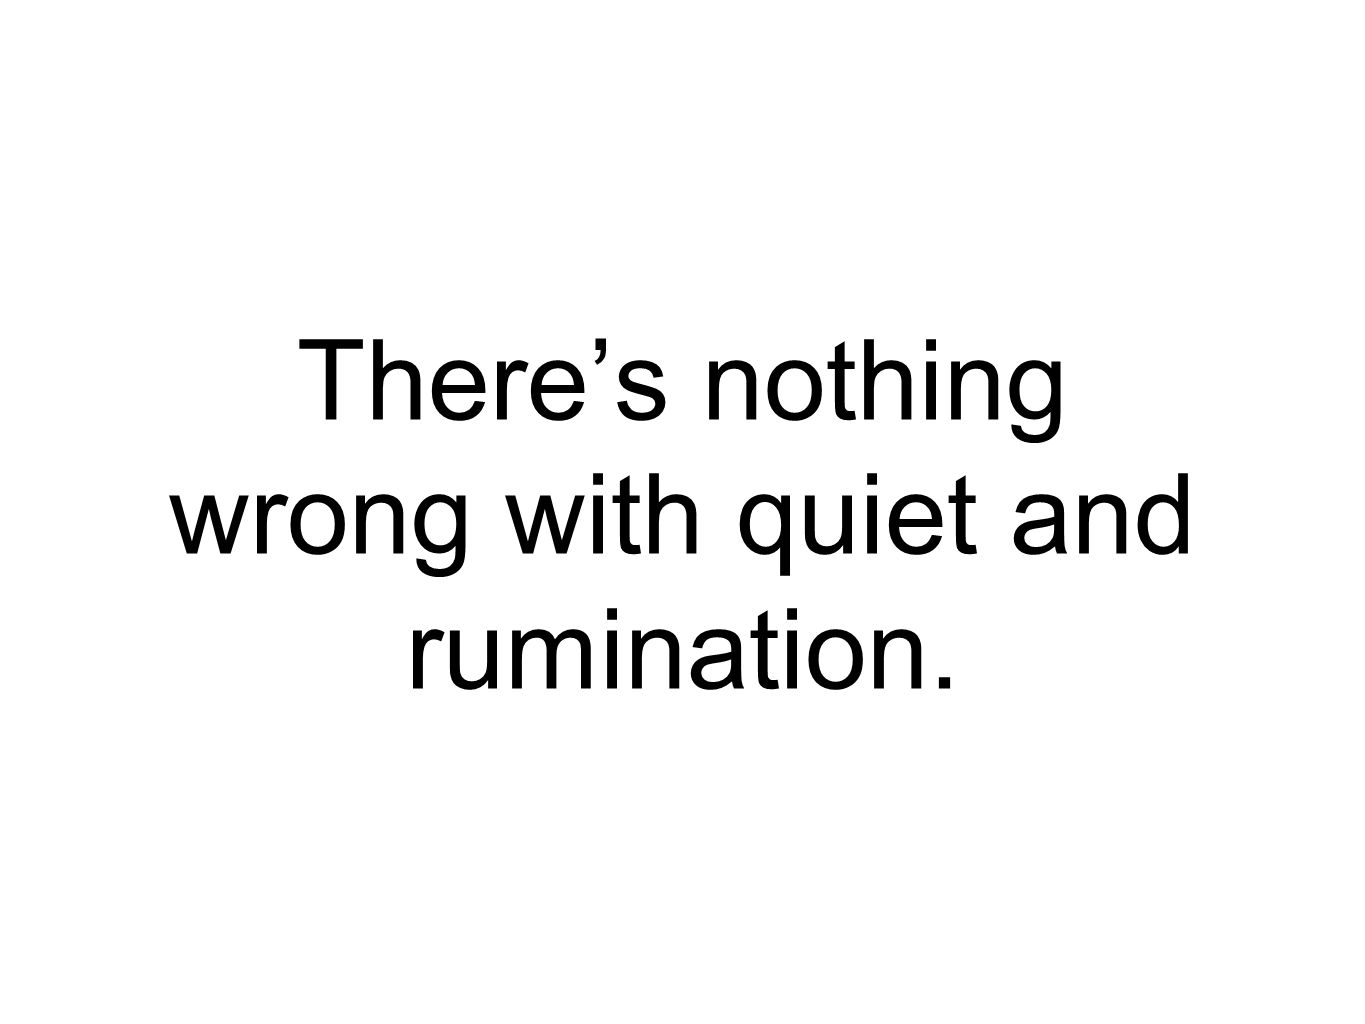 There's nothing wrong with quiet and rumination.